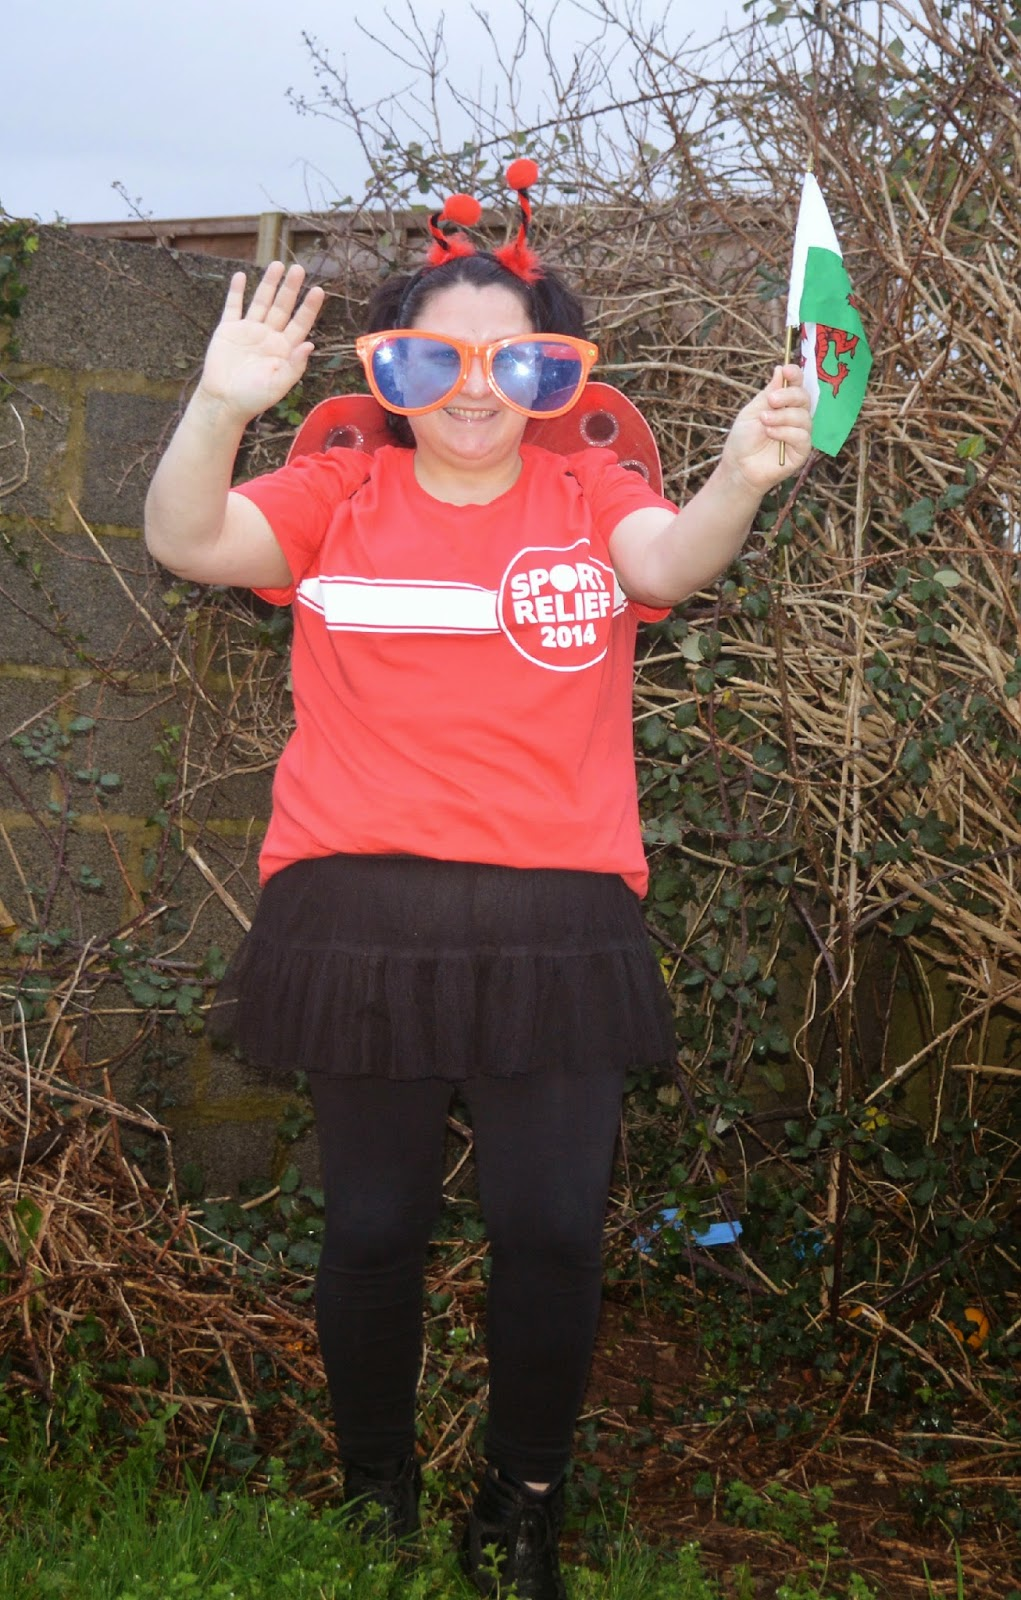 , Please Support Wales Team Honk (2014 Sports Relief Blogger's Land's End to John O'Groats Relay)